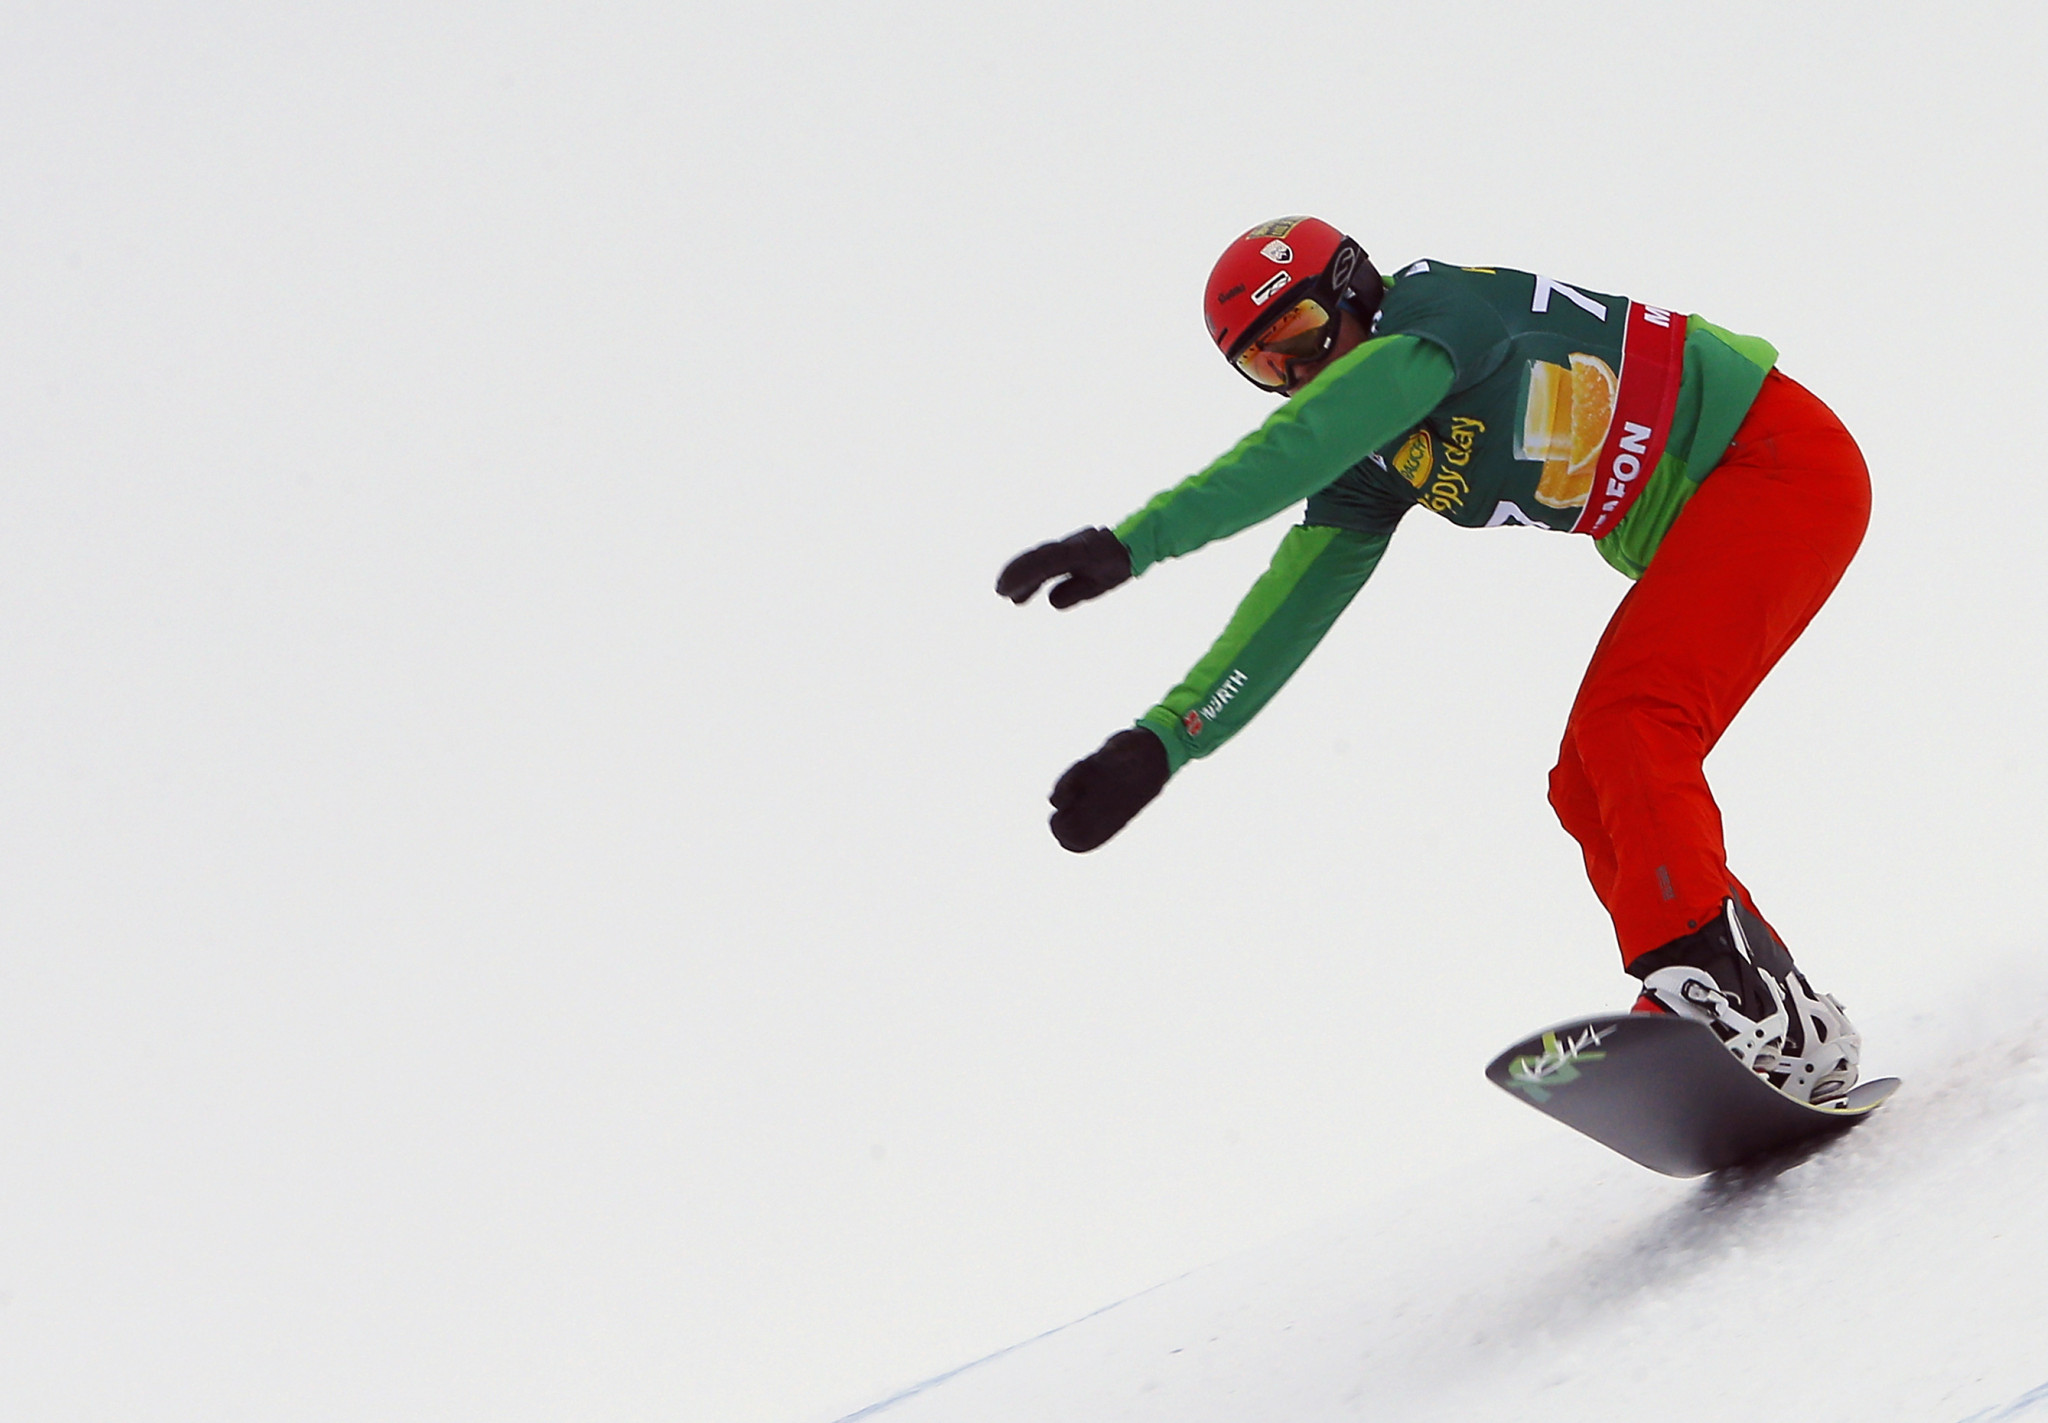 Snowboard Cross World Cup season finally begins as Smith continues strong ski cross form